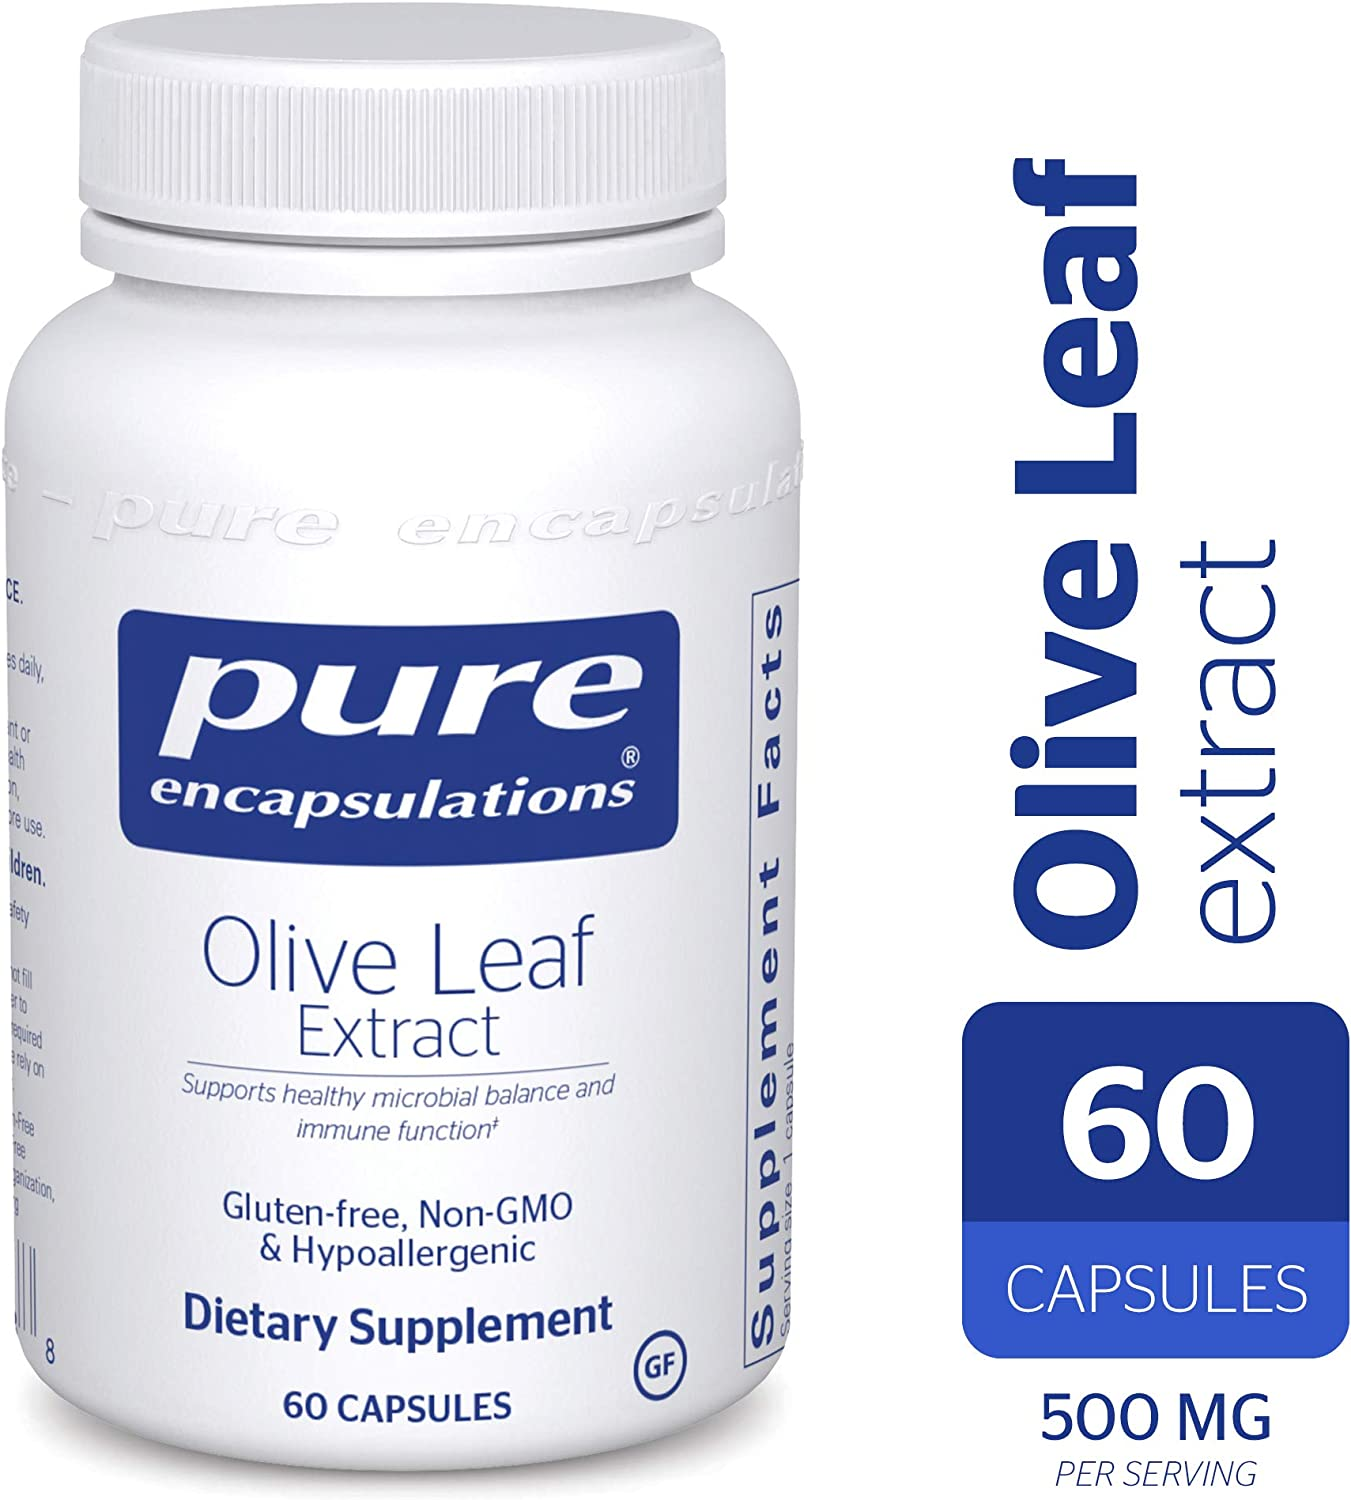 Pure Encapsulations – Olive Leaf Extract – Hypoallergenic Supplement Supports Immune System and Healthy Intestinal Environment* – 60 Capsules